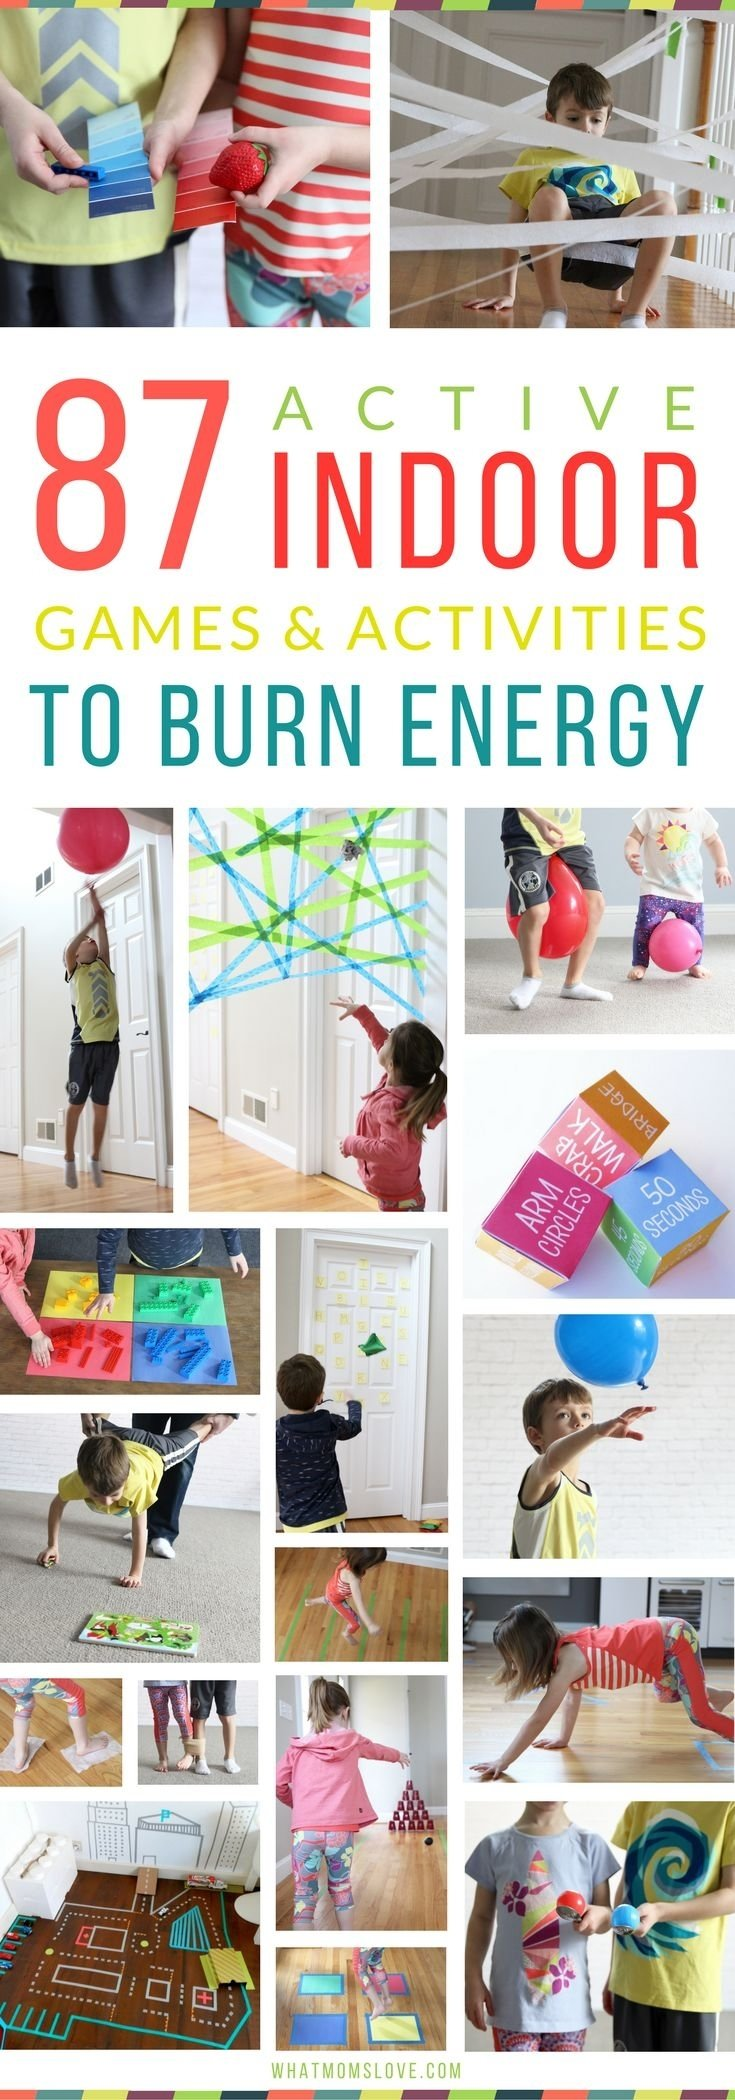 10 Fashionable Fun Game Ideas For Kids 3966 best fun for kids images on pinterest crafts for kids